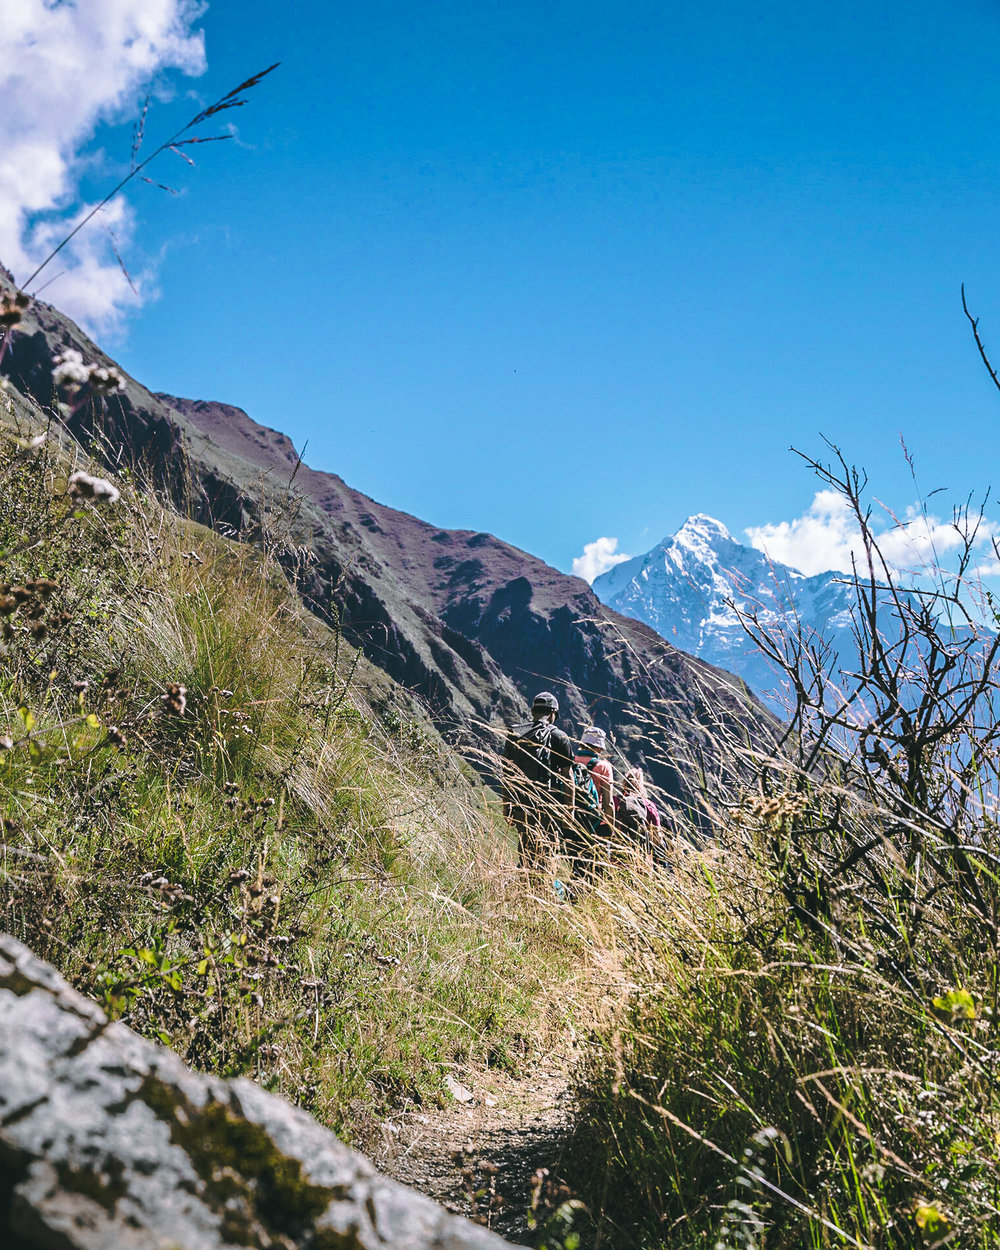 Trek To Machu Picchu - Glorious Mountain Views